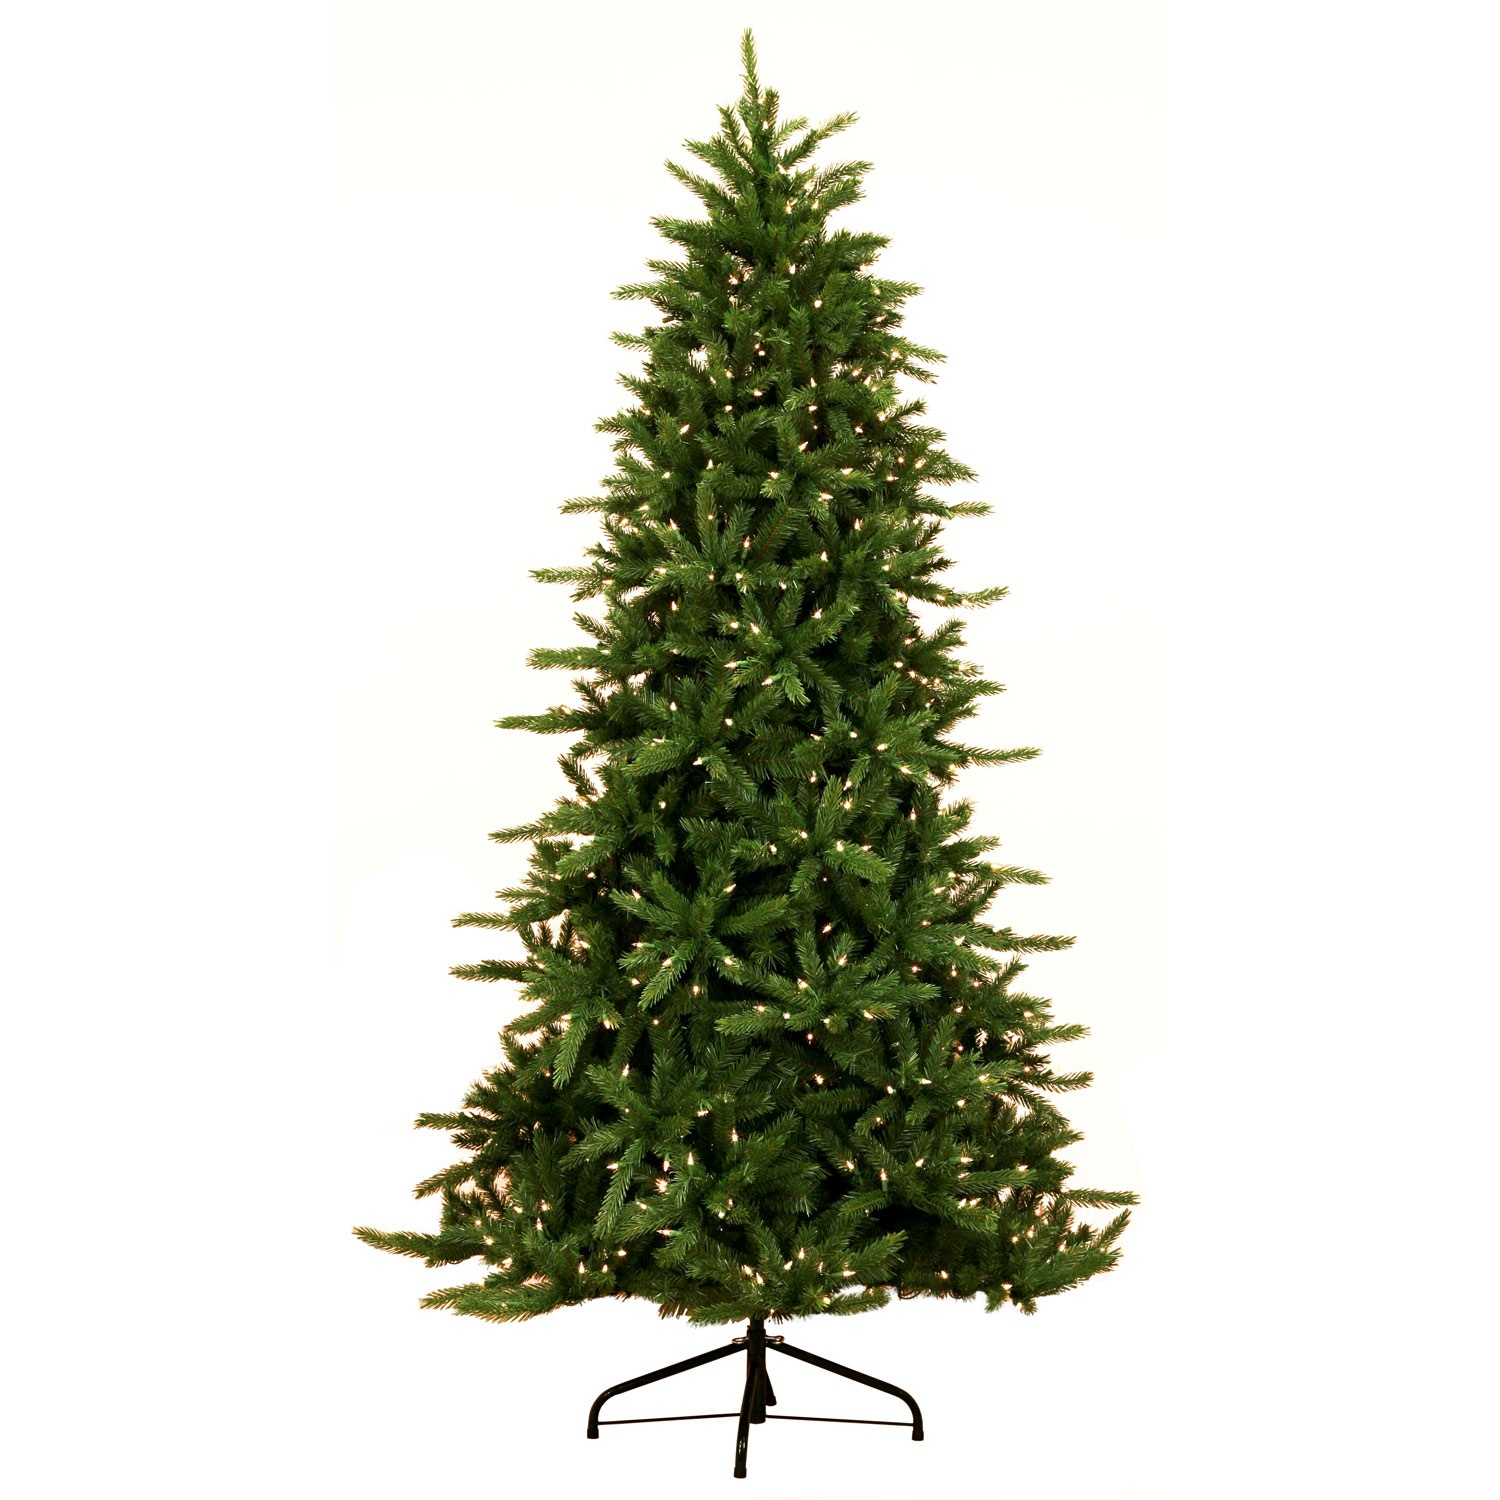 9 Foot Prelit Christmas Tree